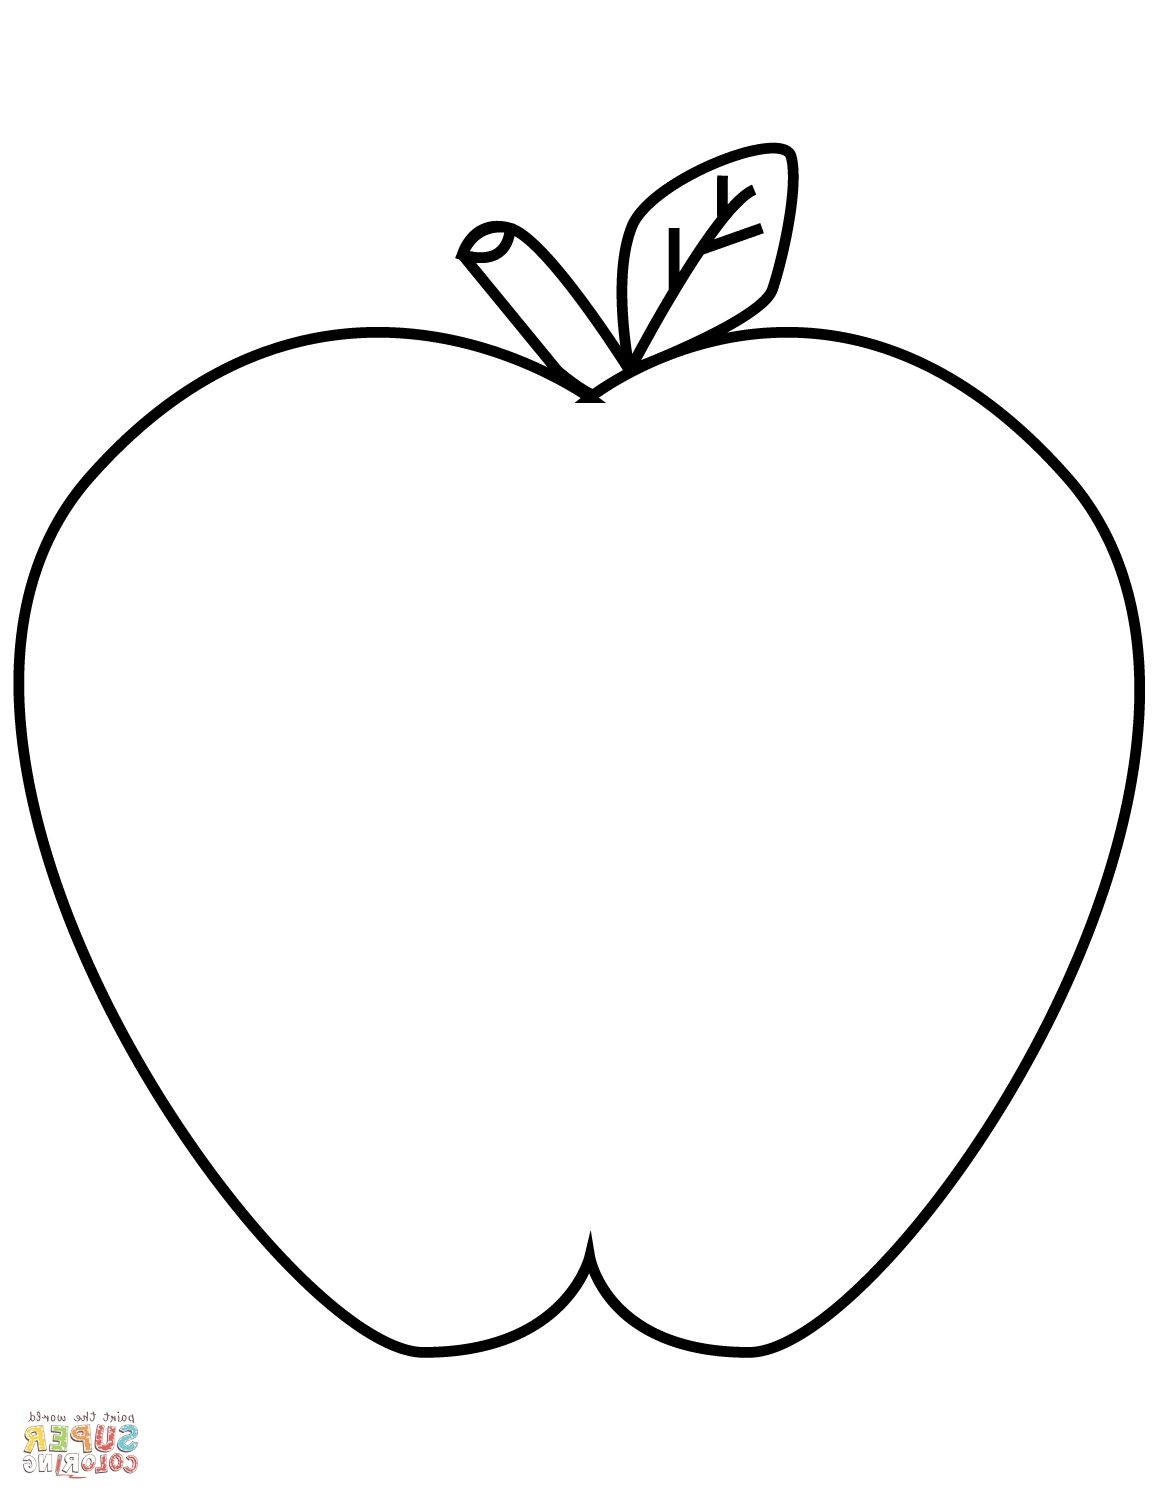 Apple Coloring Sheet Iby7 Apples Coloring Pages Free Coloring Pages